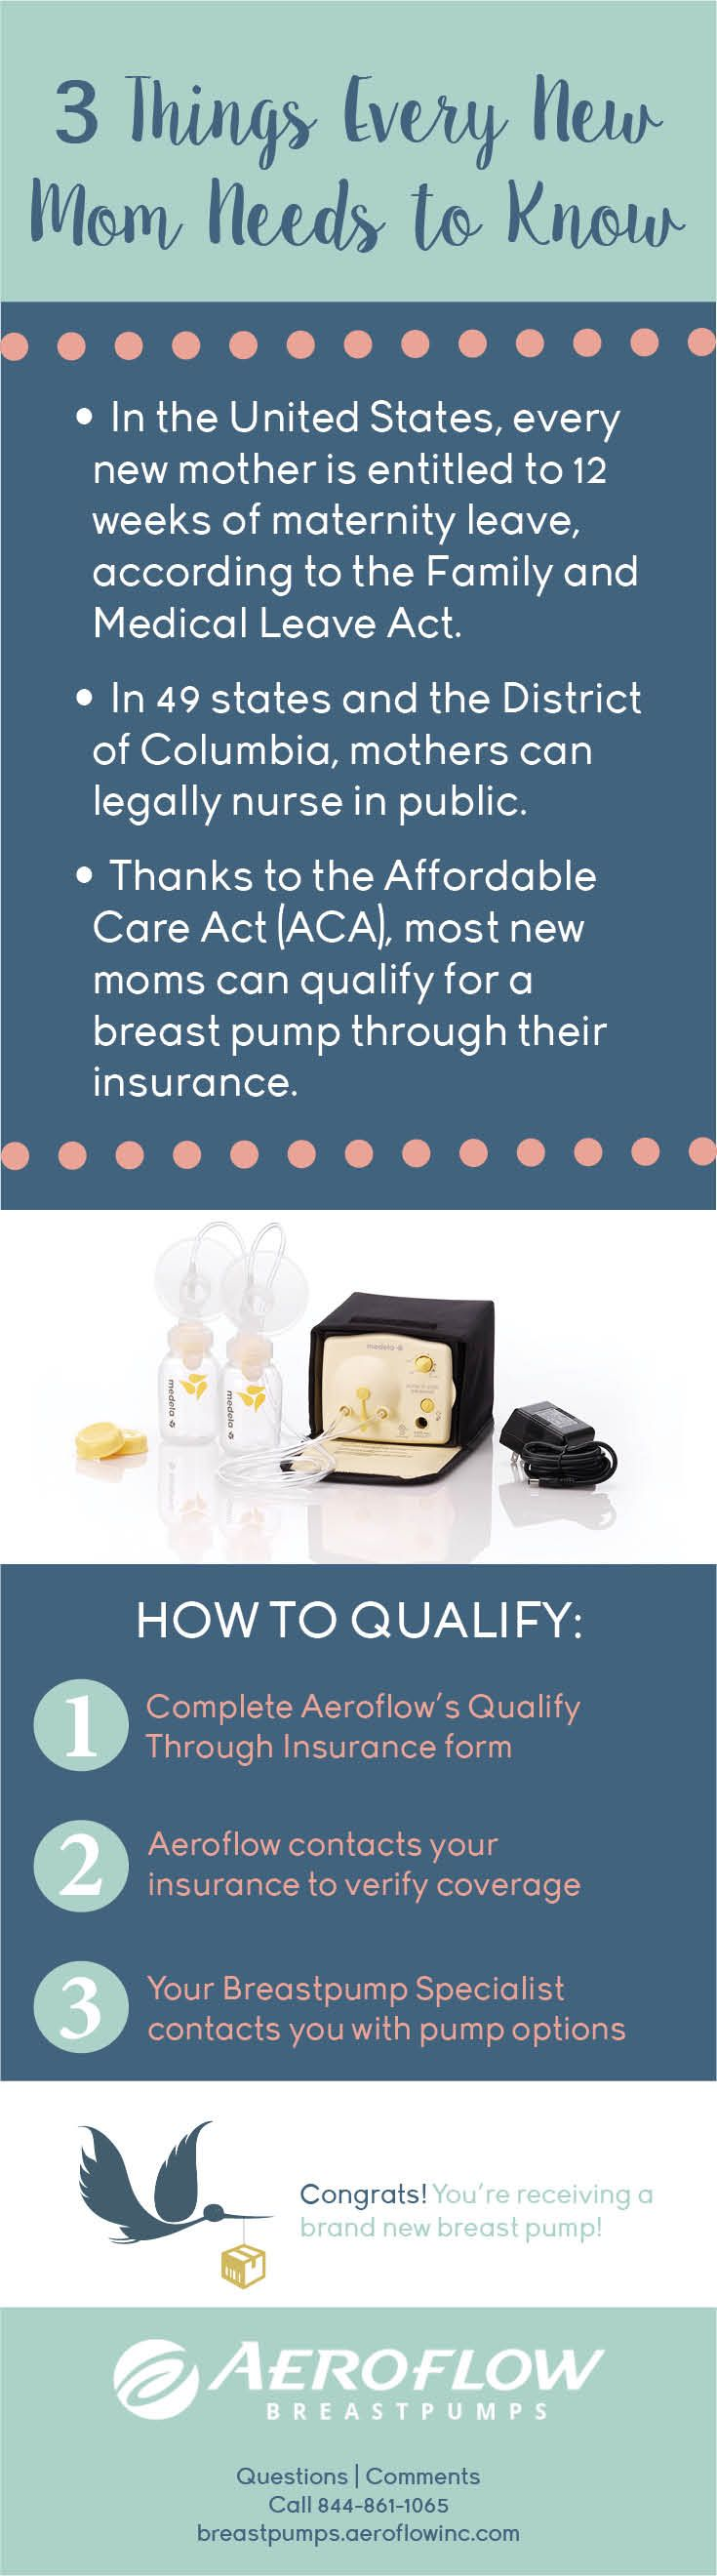 Under the Affordable Care Act, health insurance plans are now required to cover breastfeeding support and supplies. Find out what you qualify for by calling Aeroflow Breastpumps today at (844) 861-1065.